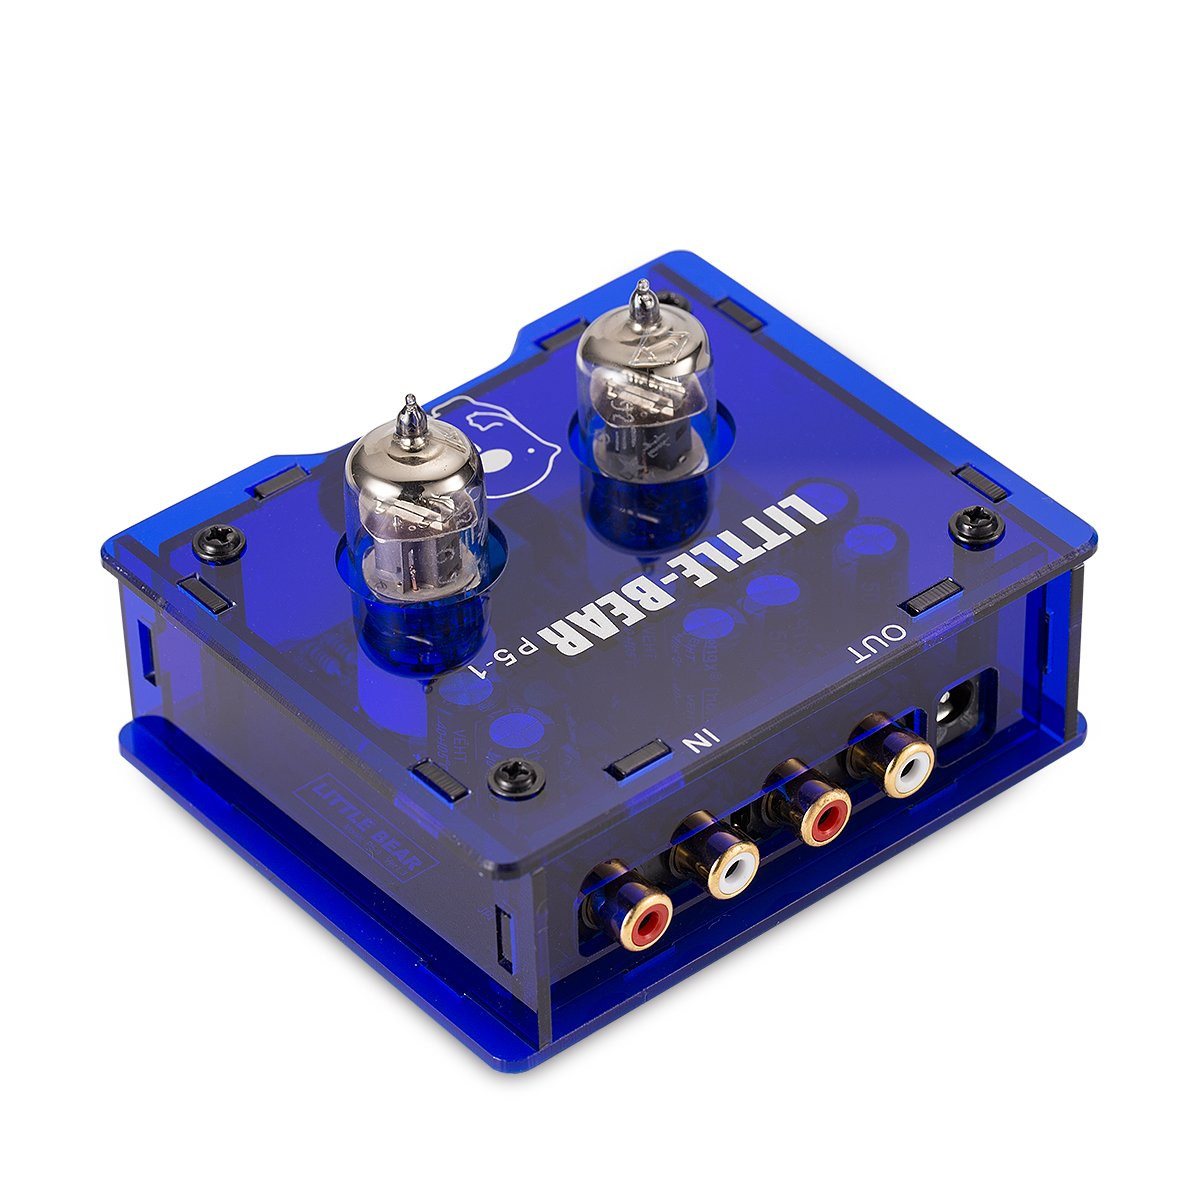 Little bear P5-1 BLUE tube valve puffer Preamp Preamplifier amplifier ver1.2 by Little Bear